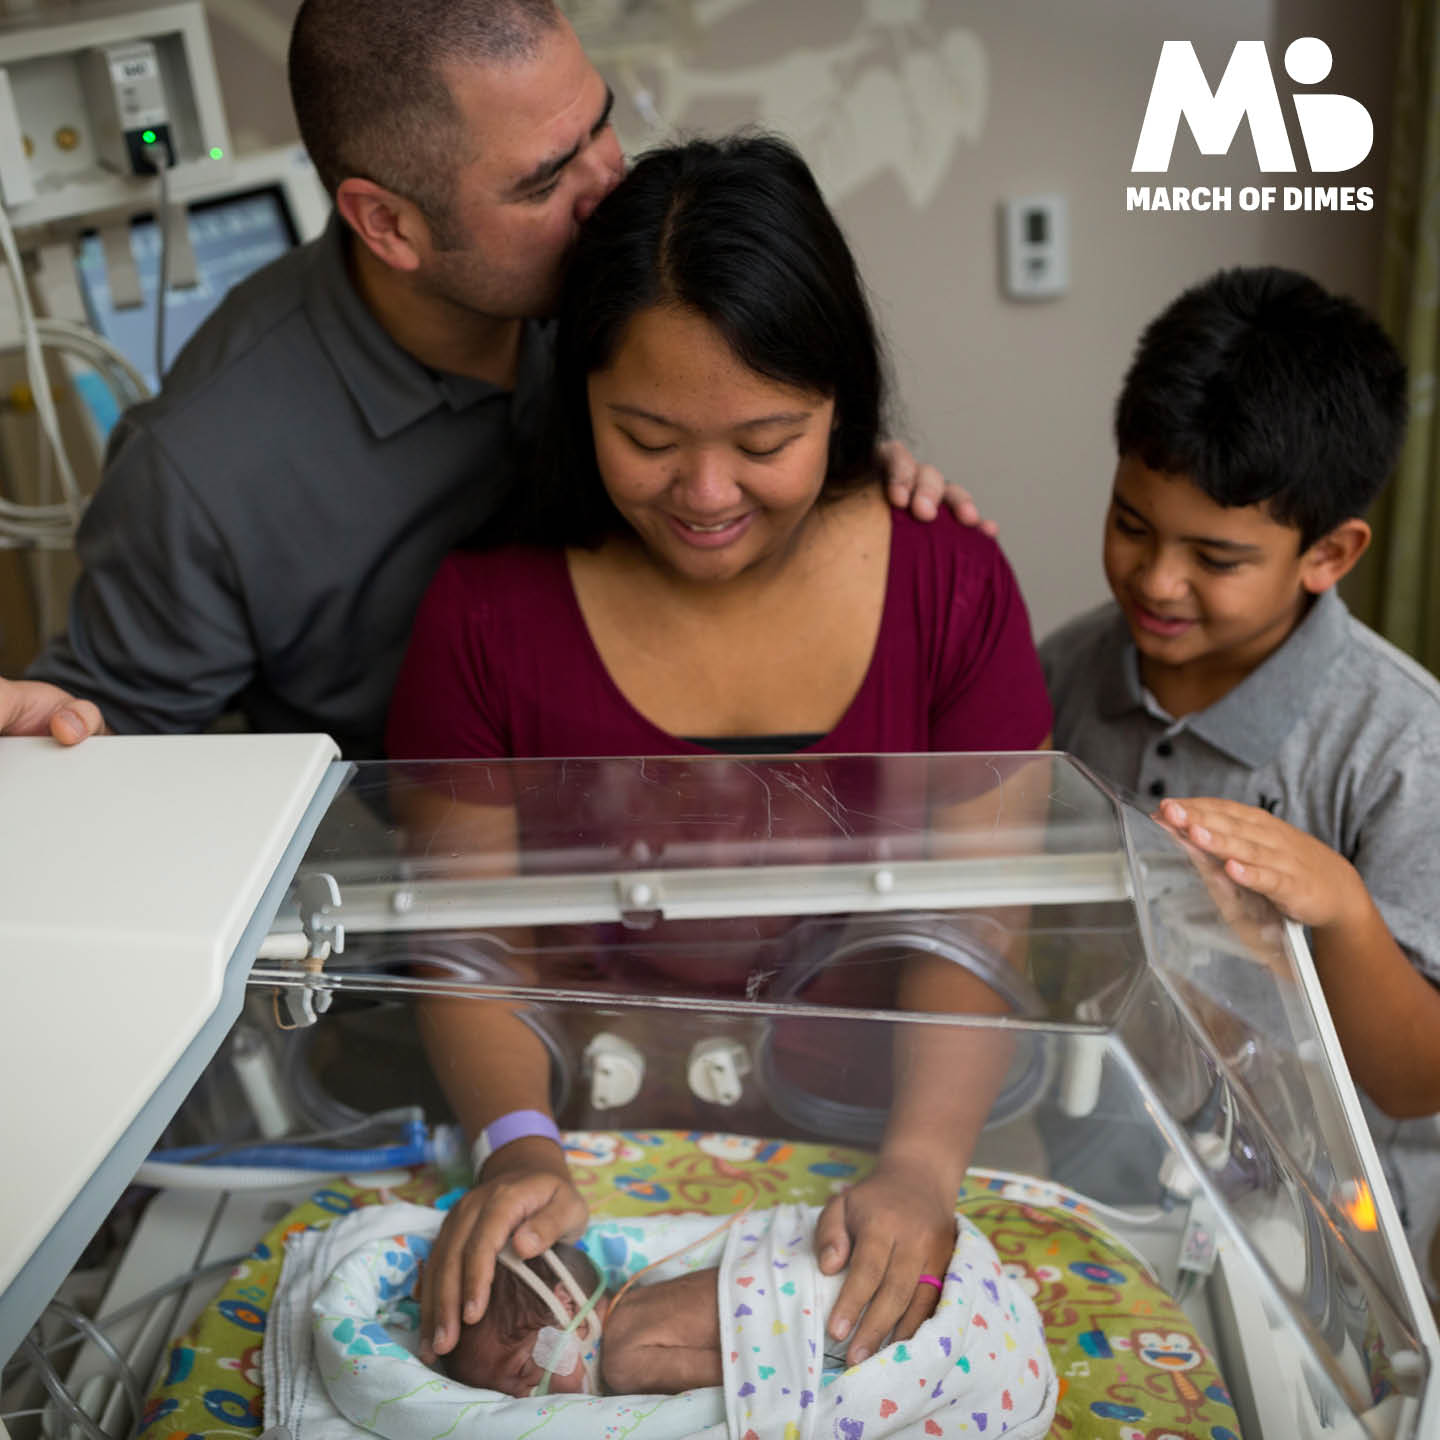 Getting your other children ready for a visit to the NICU